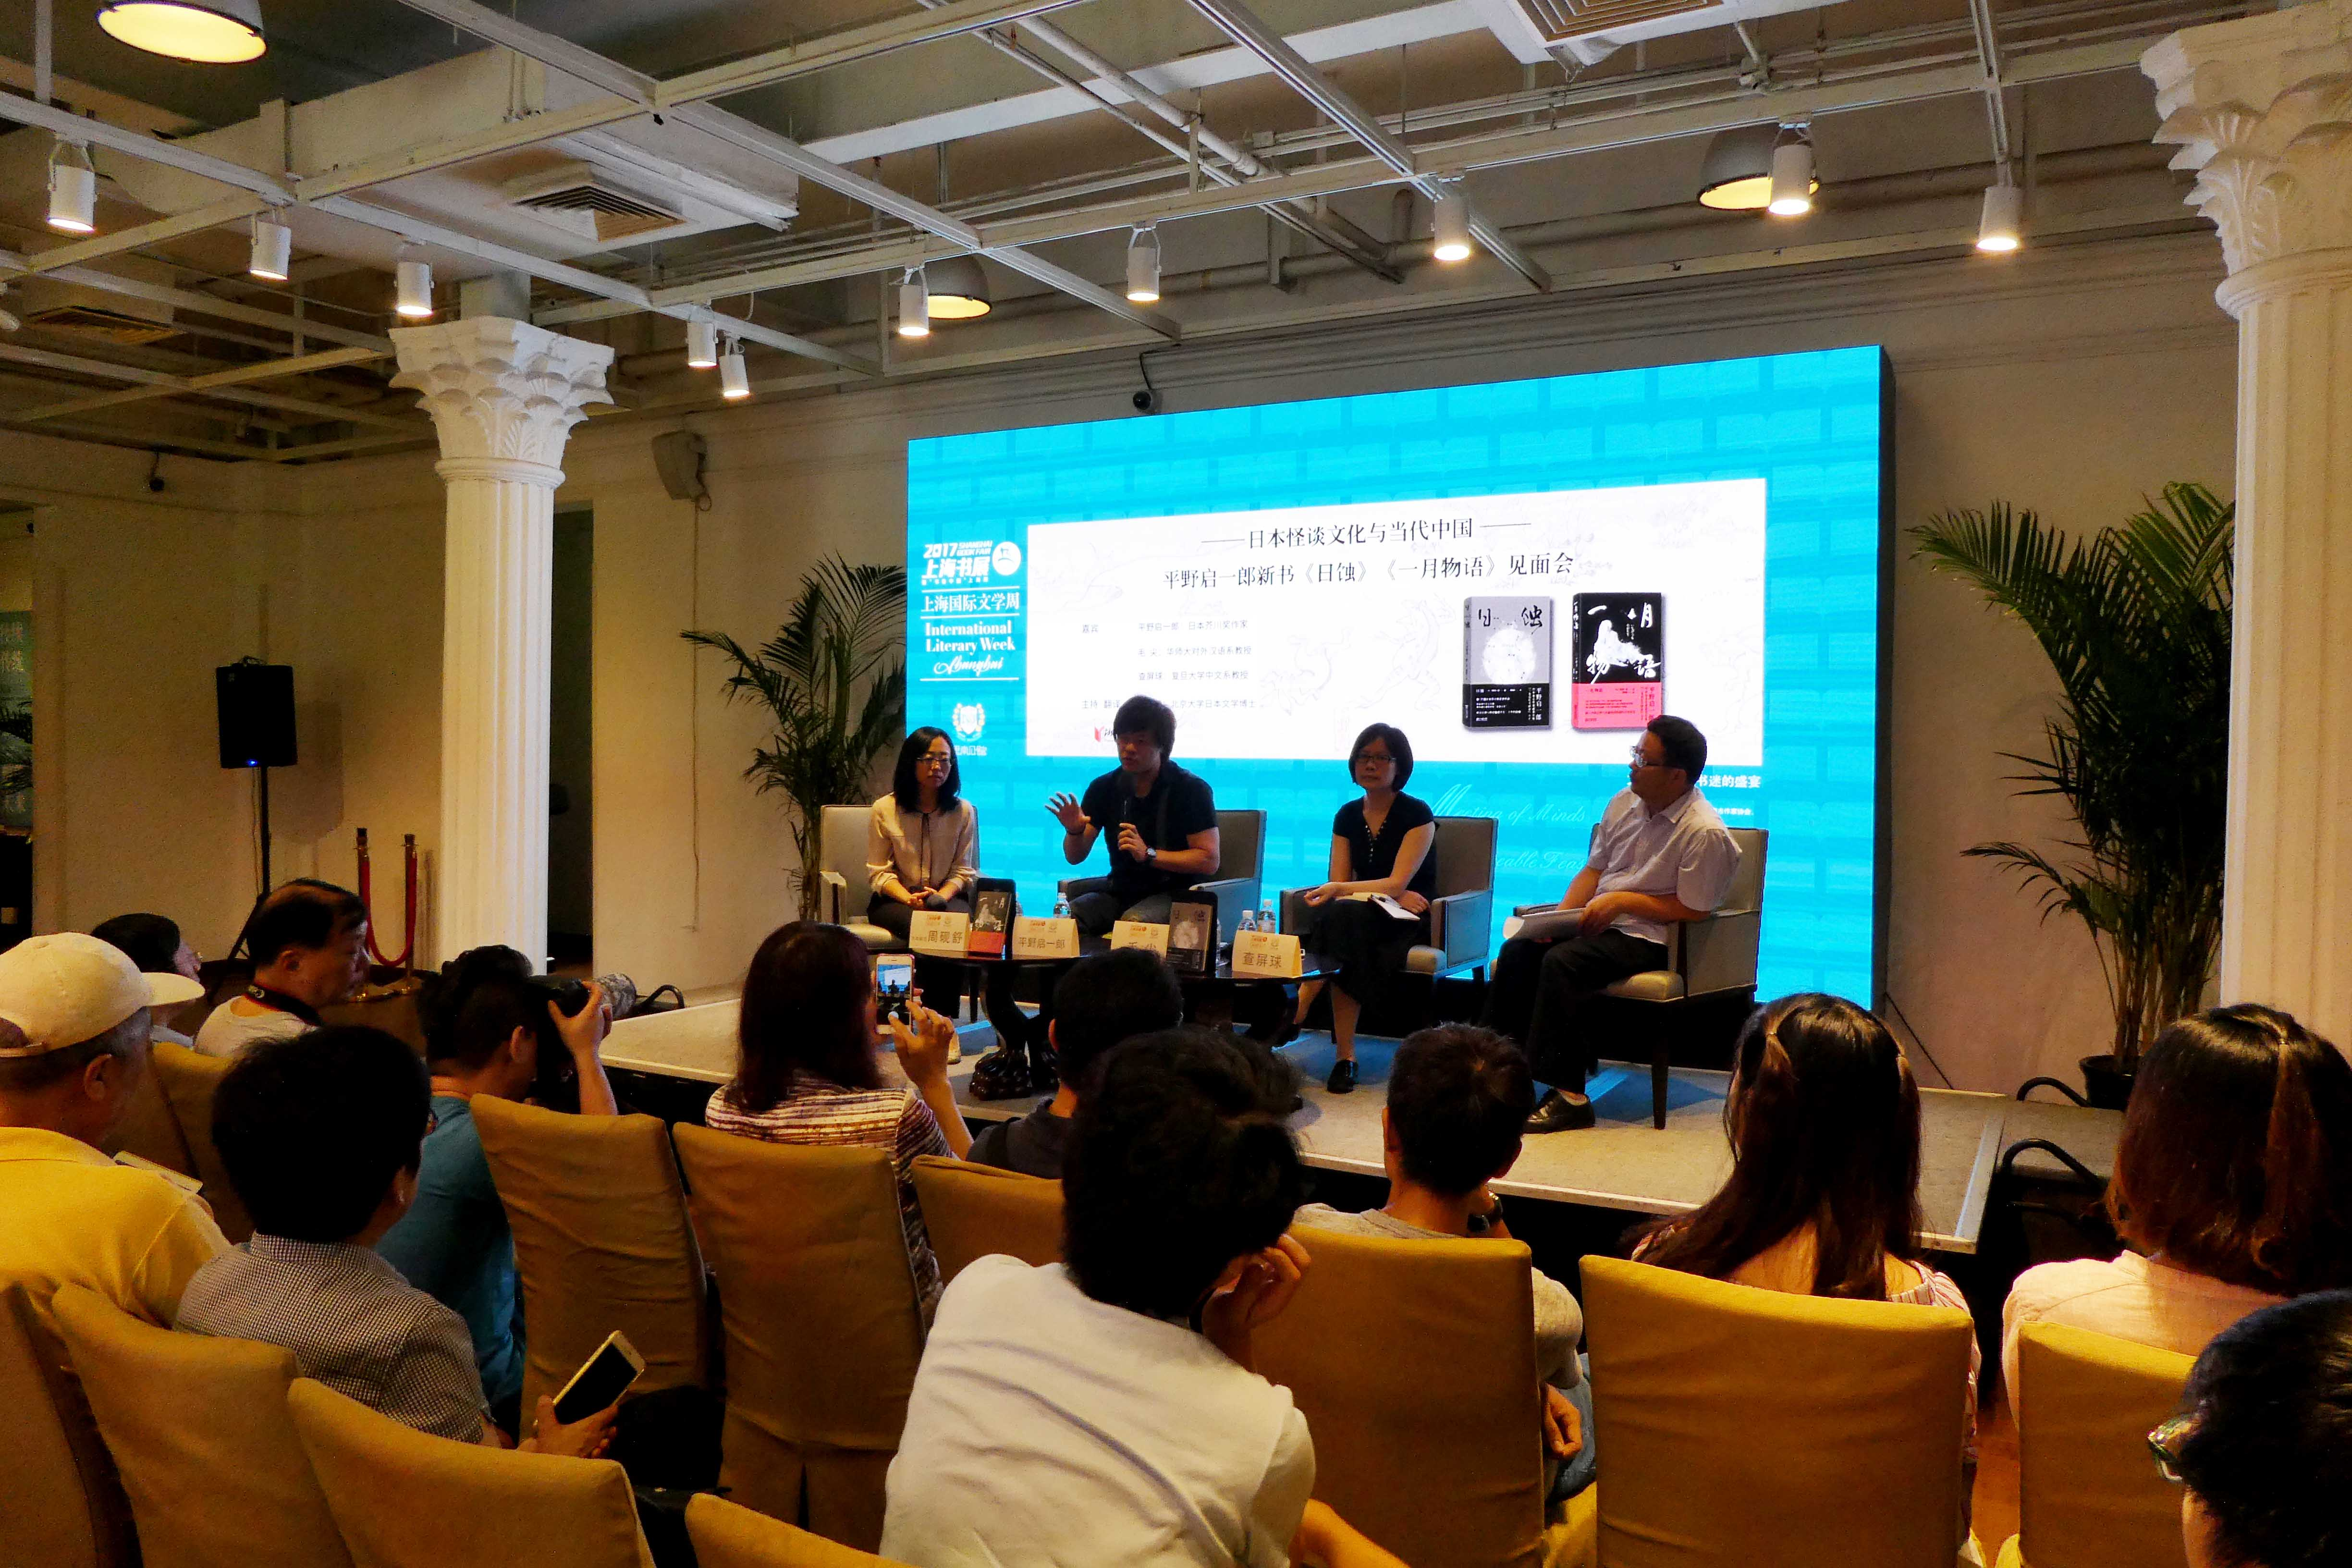 (From left) Zhou Yanshu (host and interpreter), Keiichirō Hirano, Mao Jian, Zha Pingqiu at the Shanghai International Literary Week event for Hirano's Eclipse and Tale of the First Moon